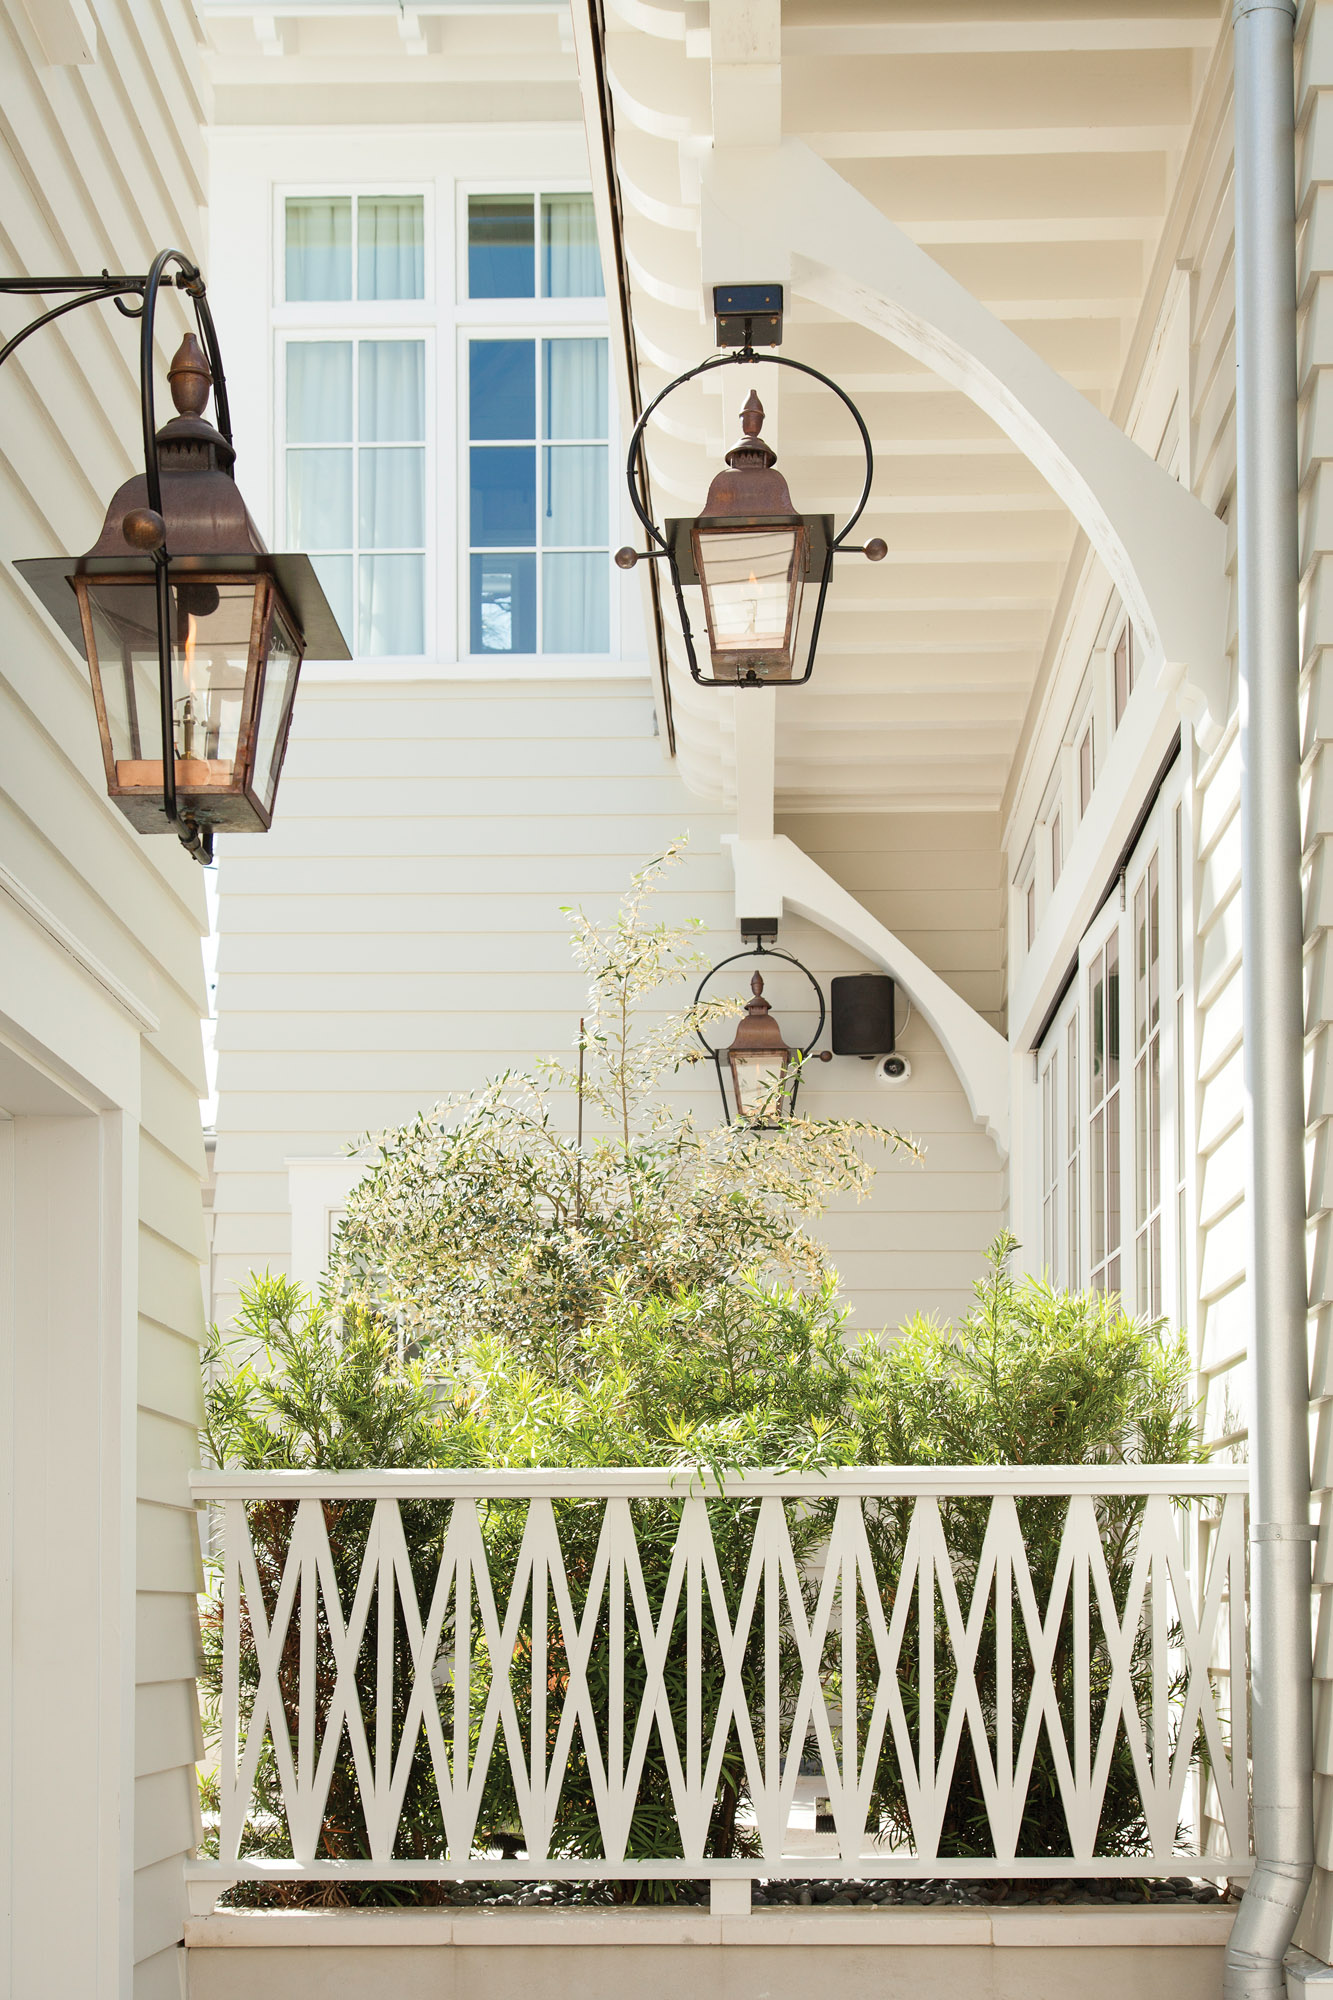 Exterior details are simple: period lighting and neutral colors.